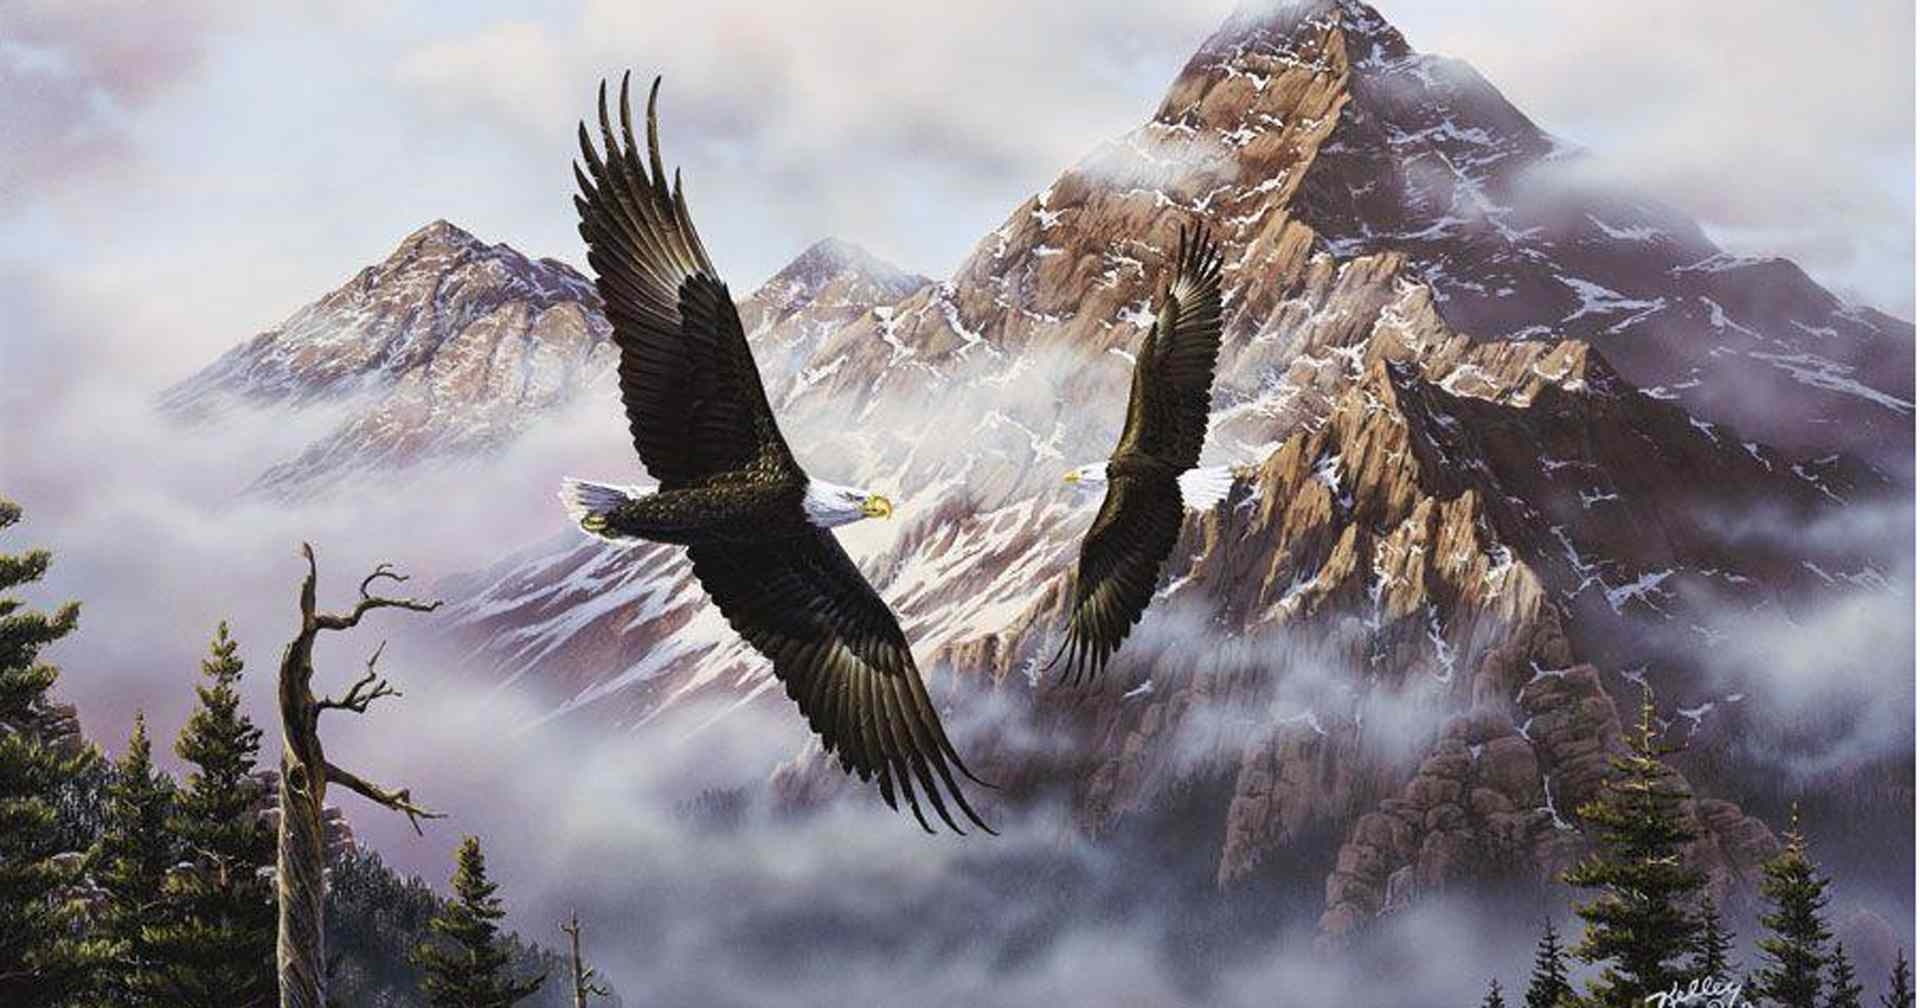 Patriotic eagle wallpapers free wallpapersafari for Eagle wall mural